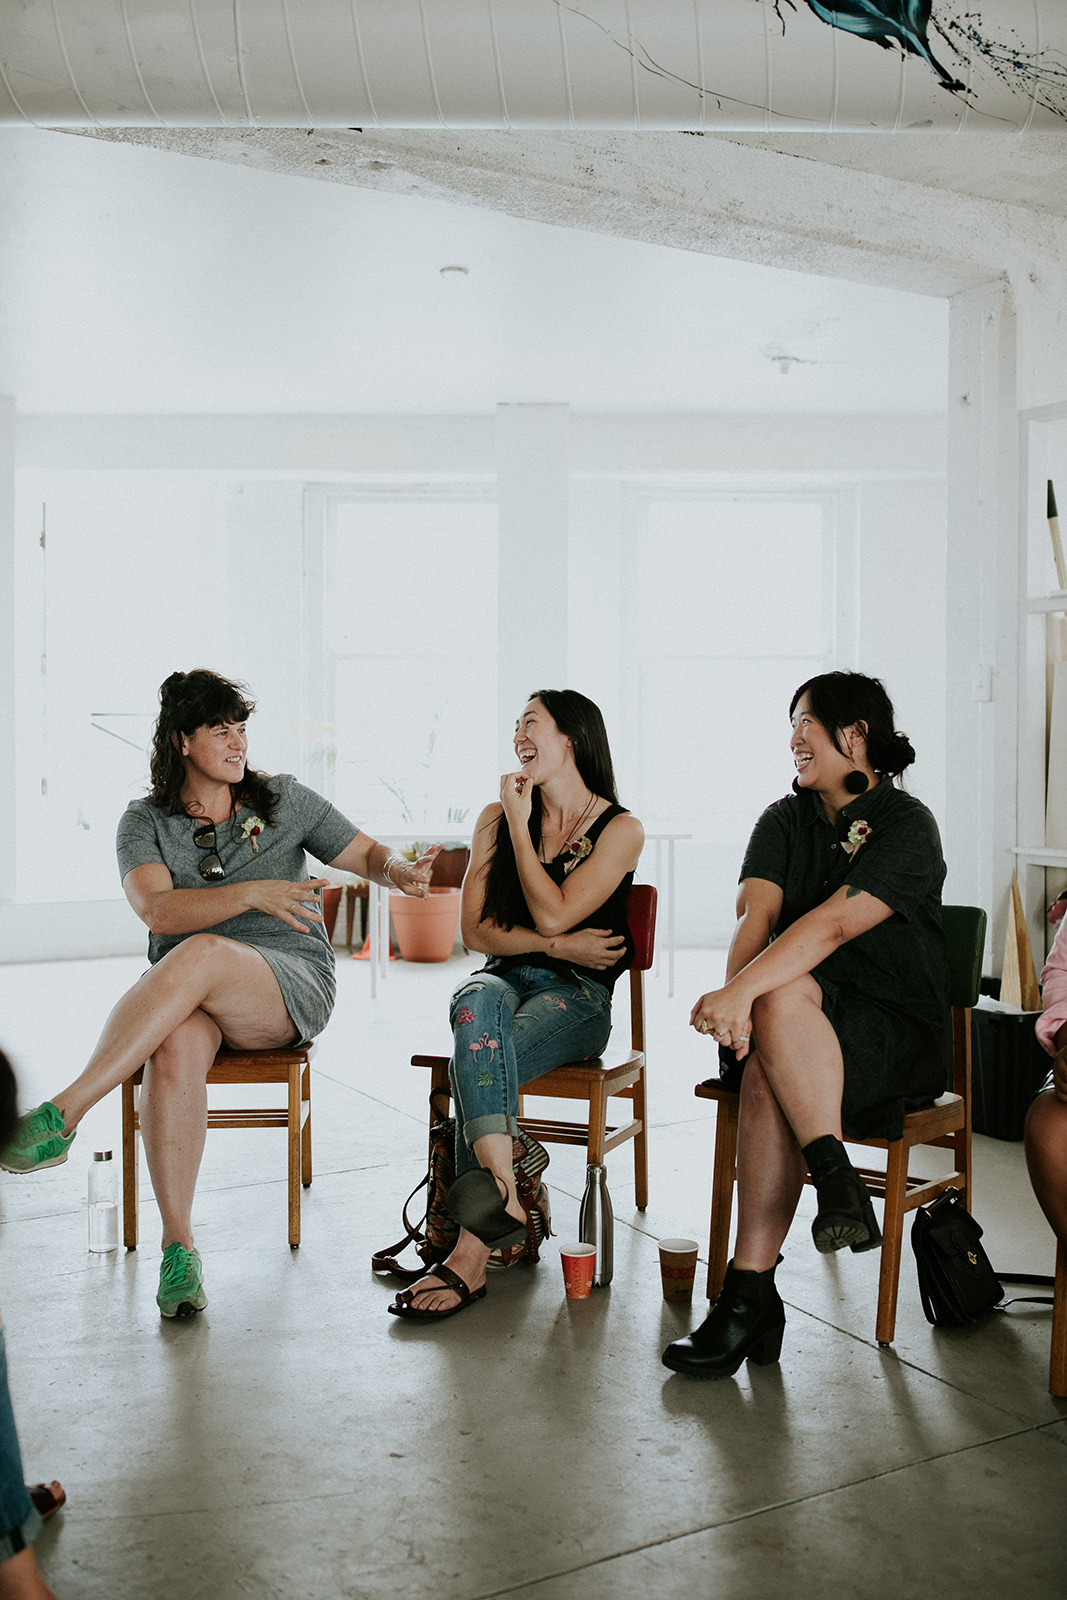 From left to right: Lisa Waud, Meiko Krishok and Eileen Lee.